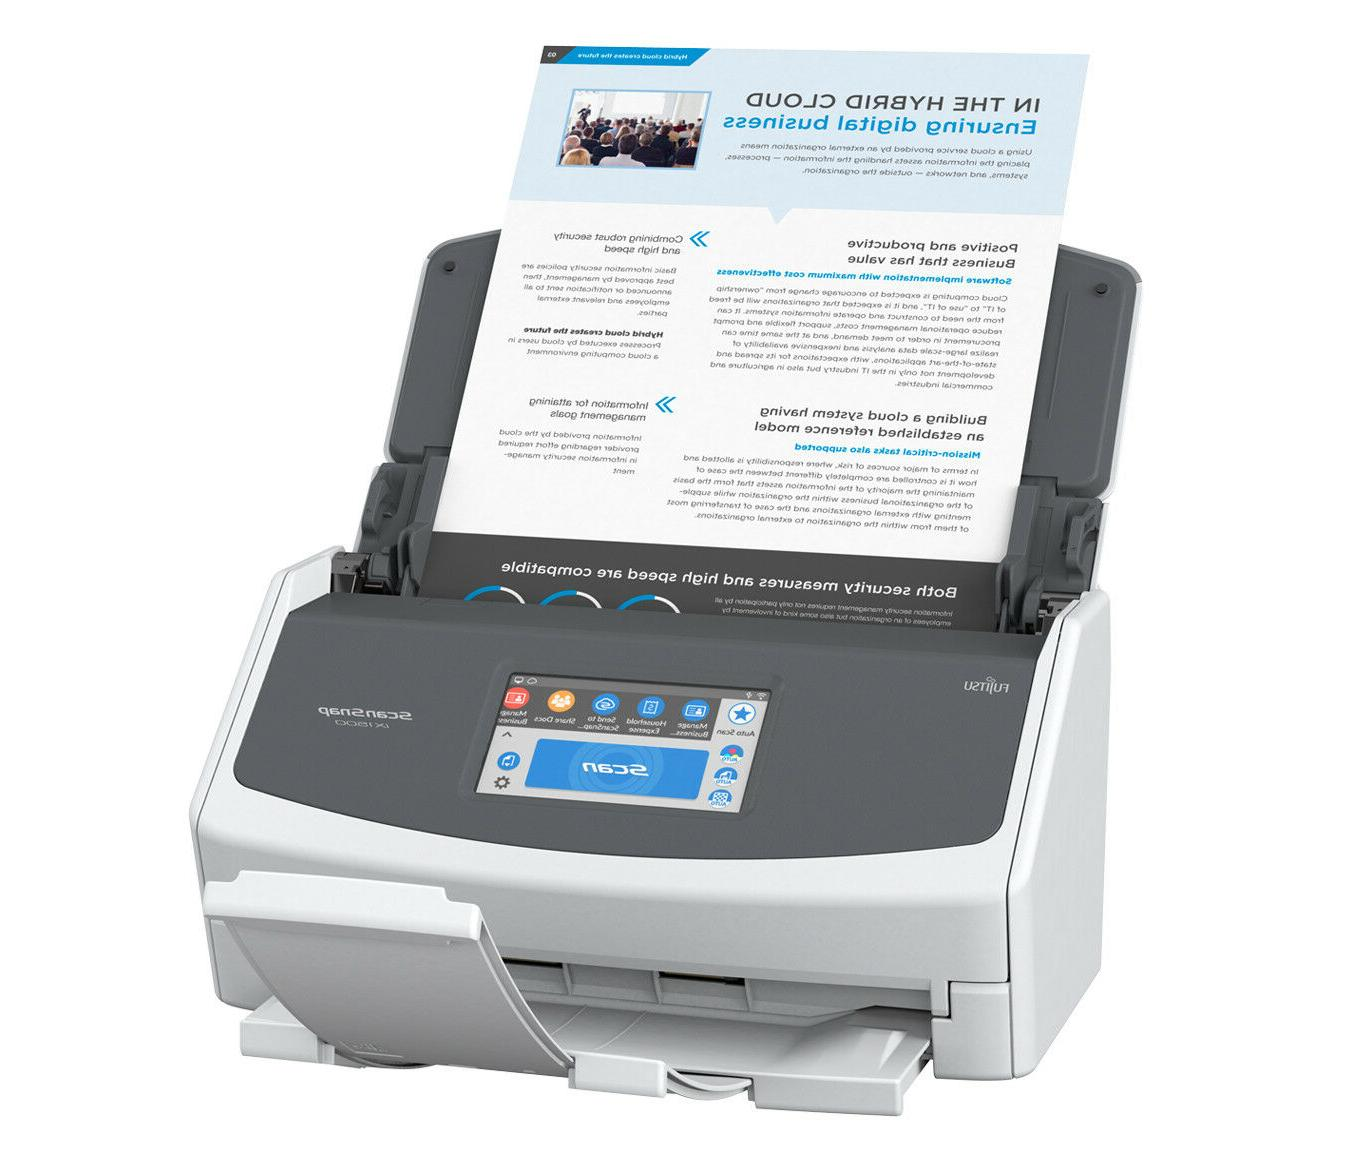 scansnap ix1500 duplex document scanner